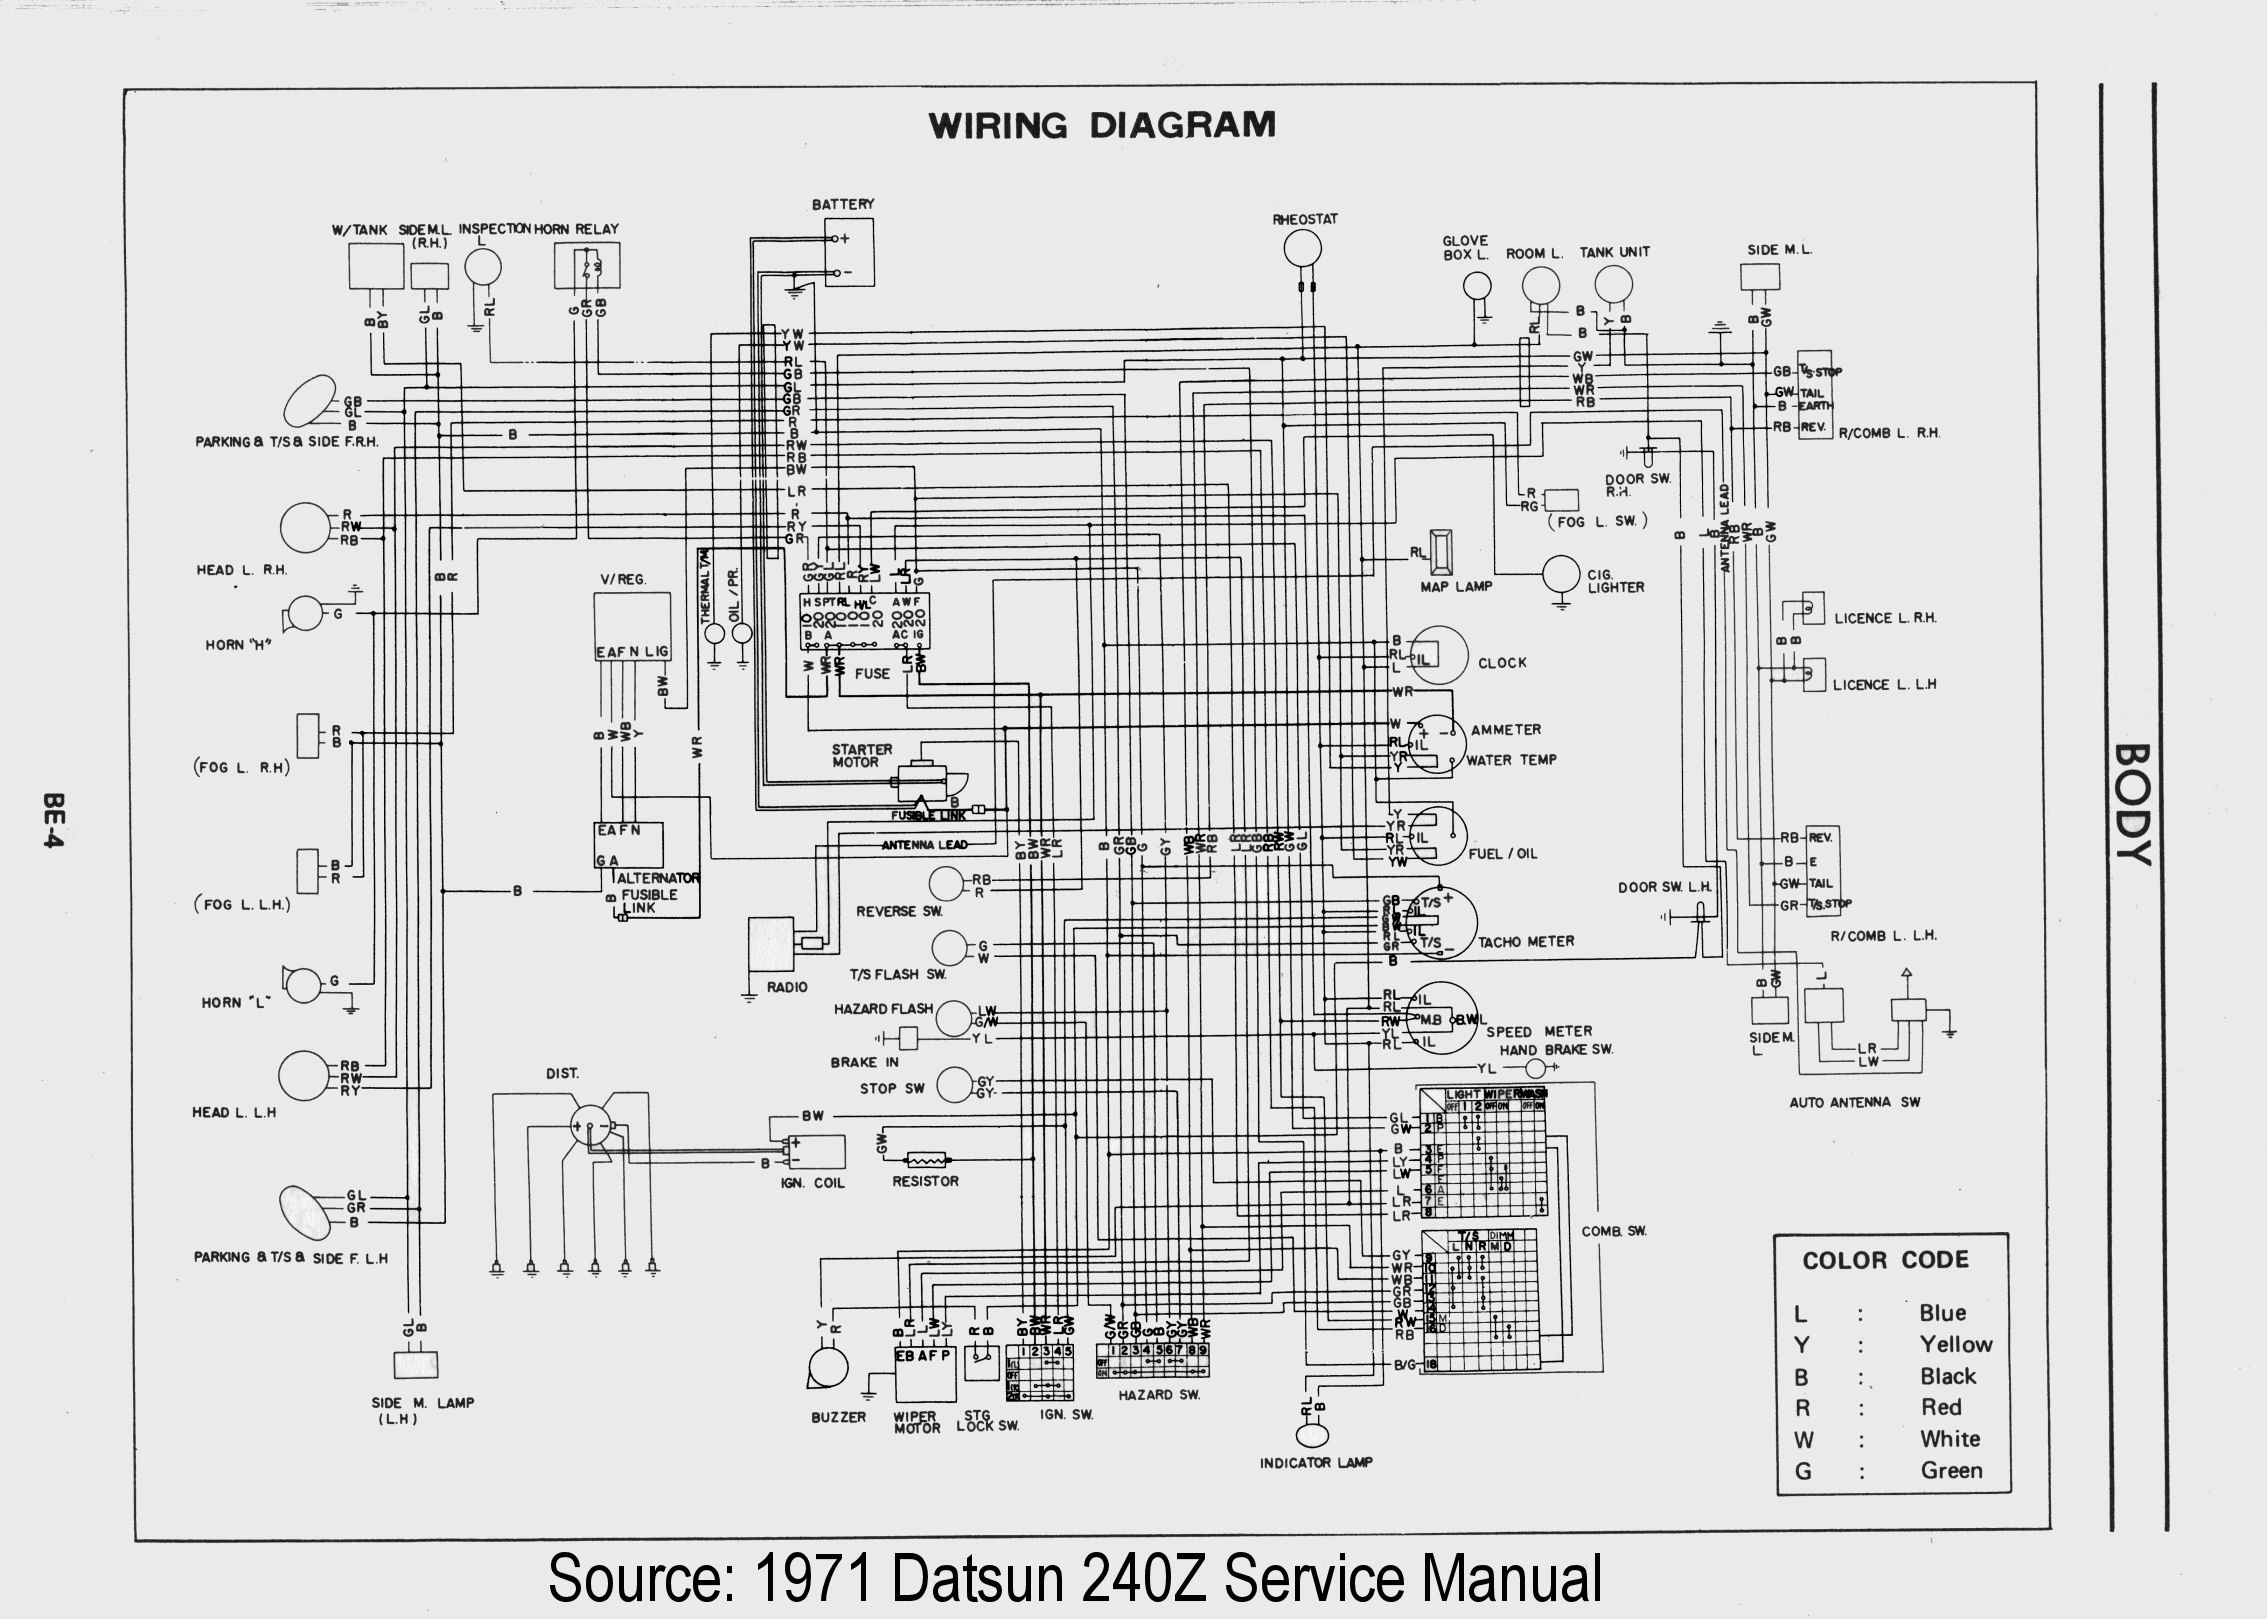 Wiring Diagram HiRes 2 280z wiring diagram 1978 datsun pickup wiring diagram \u2022 wiring nissan 350z wiring diagram at soozxer.org